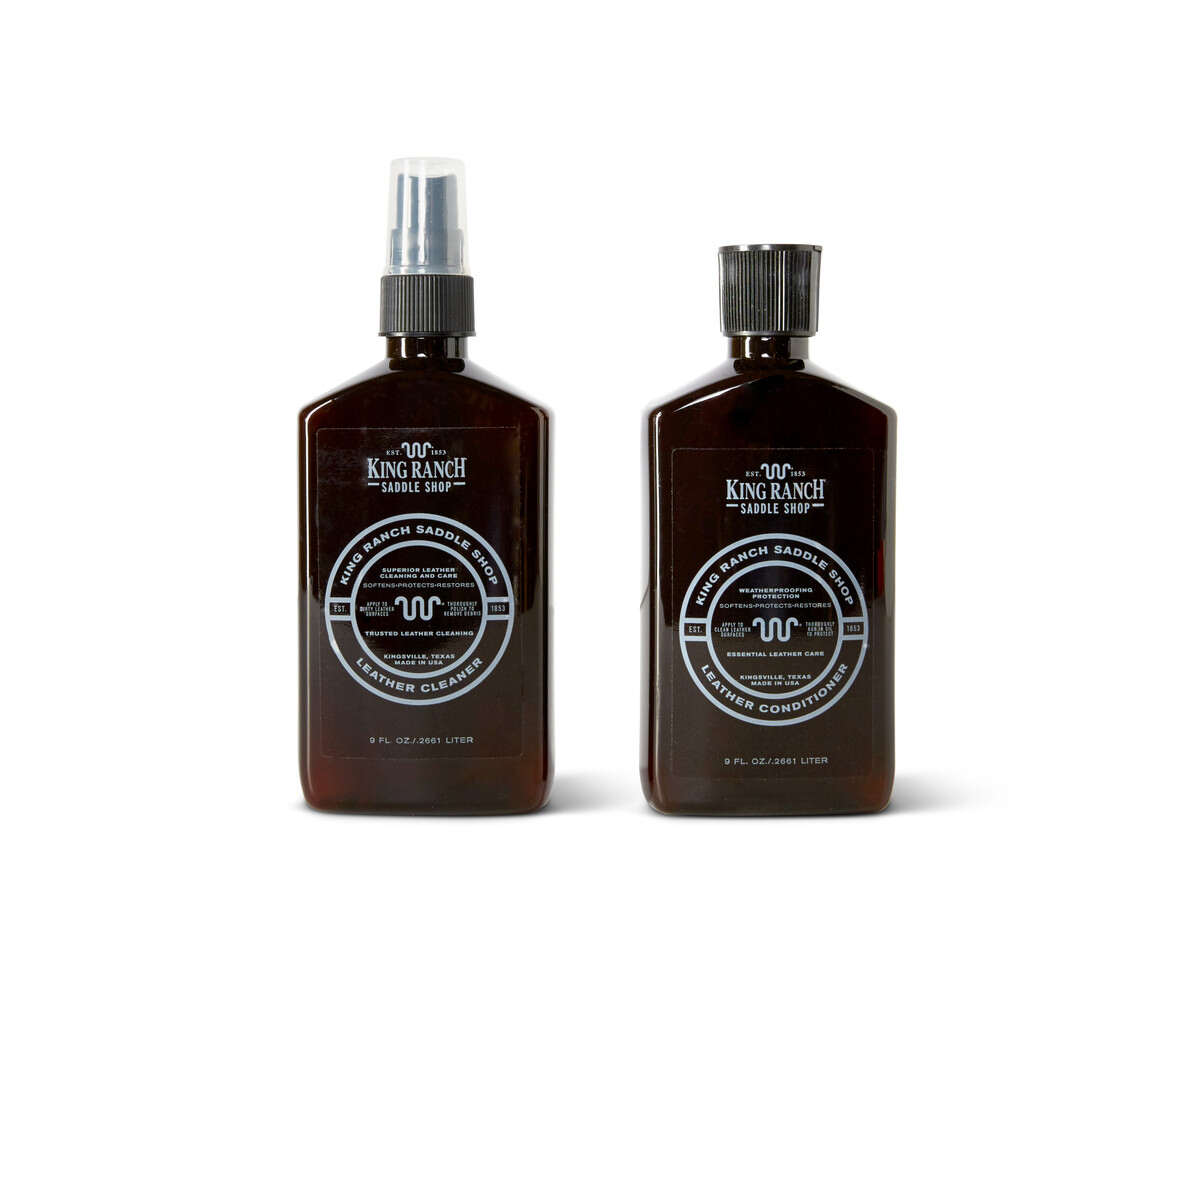 KING RANCH LEATHER CARE SET